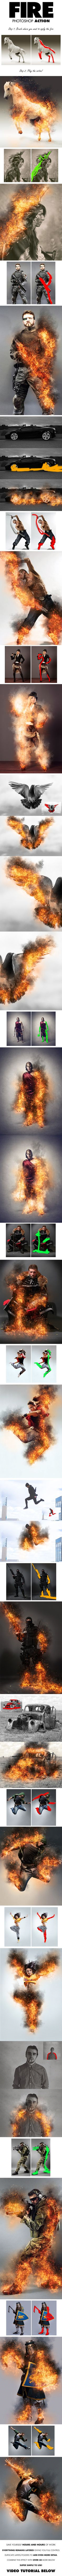 Best Fire Photoshop Action - Photo Effects Actions